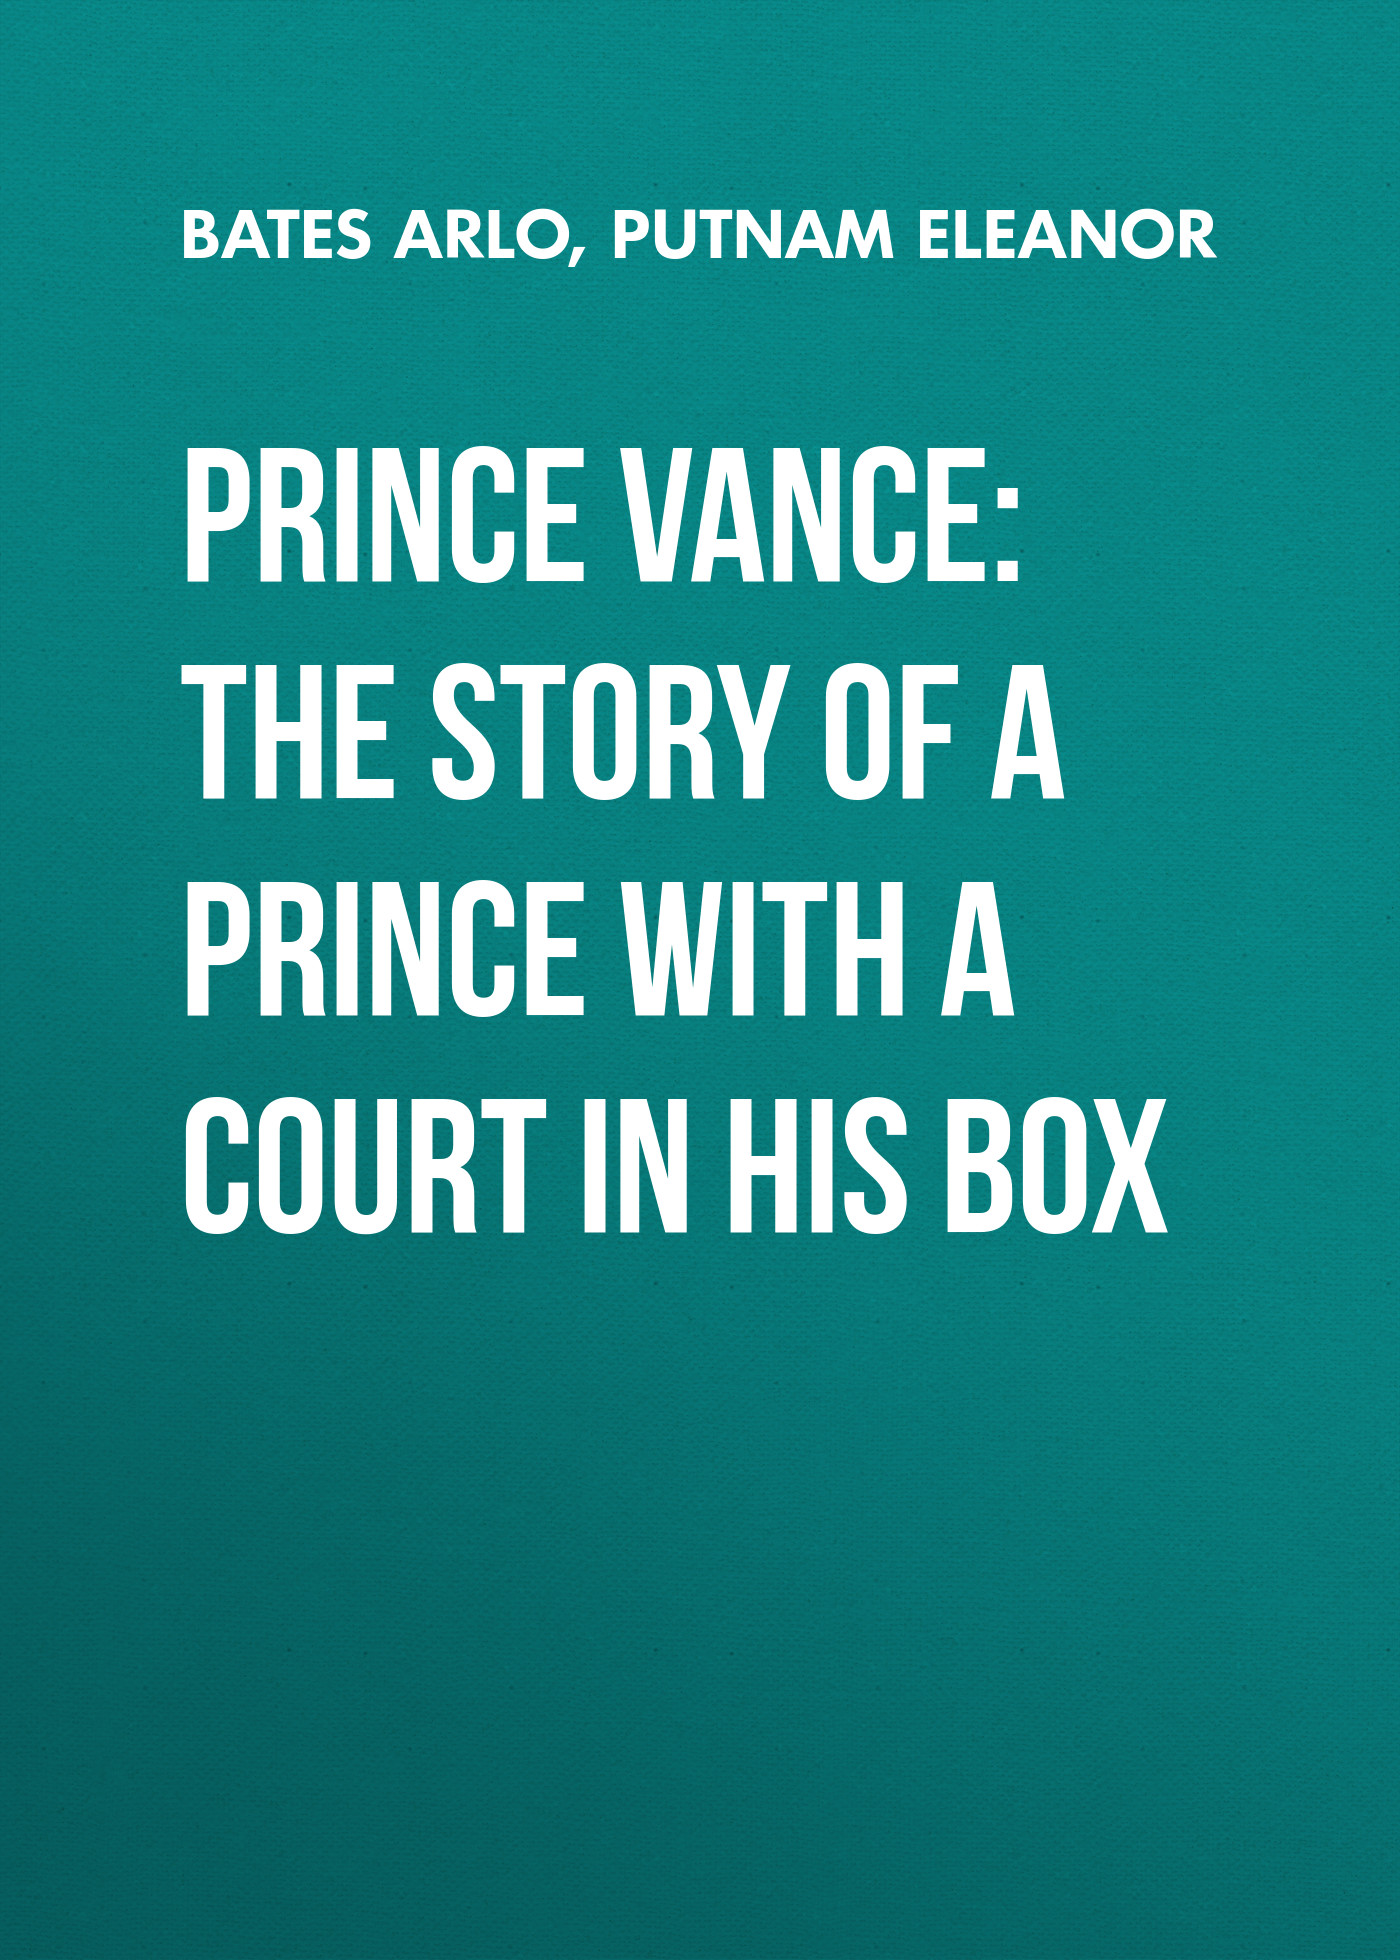 Putnam Eleanor Prince Vance: The Story of a Prince with a Court in His Box браслет prince special promotion the art of curetm safety knotted cherry